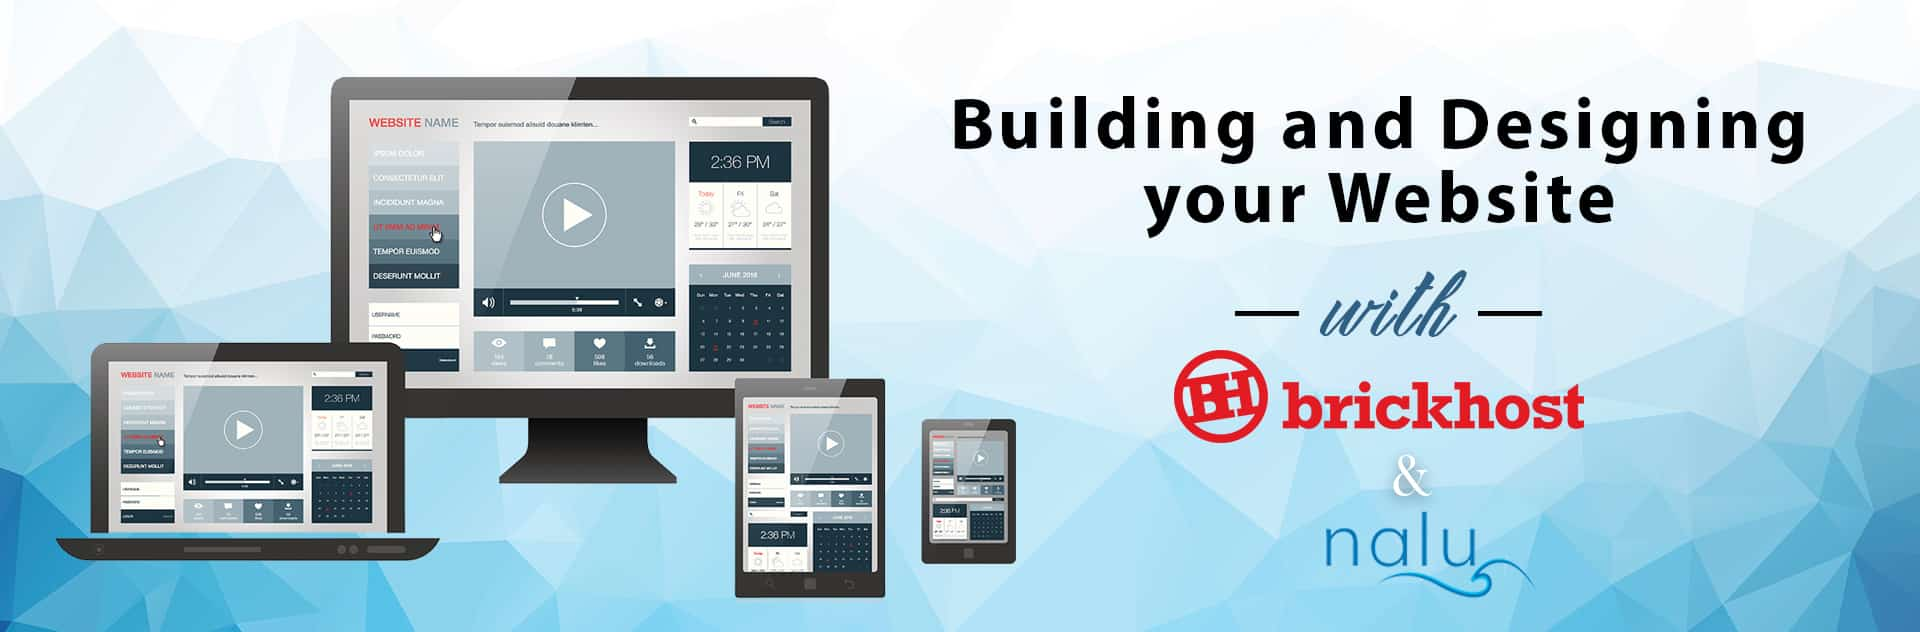 building-and-designing-your-website